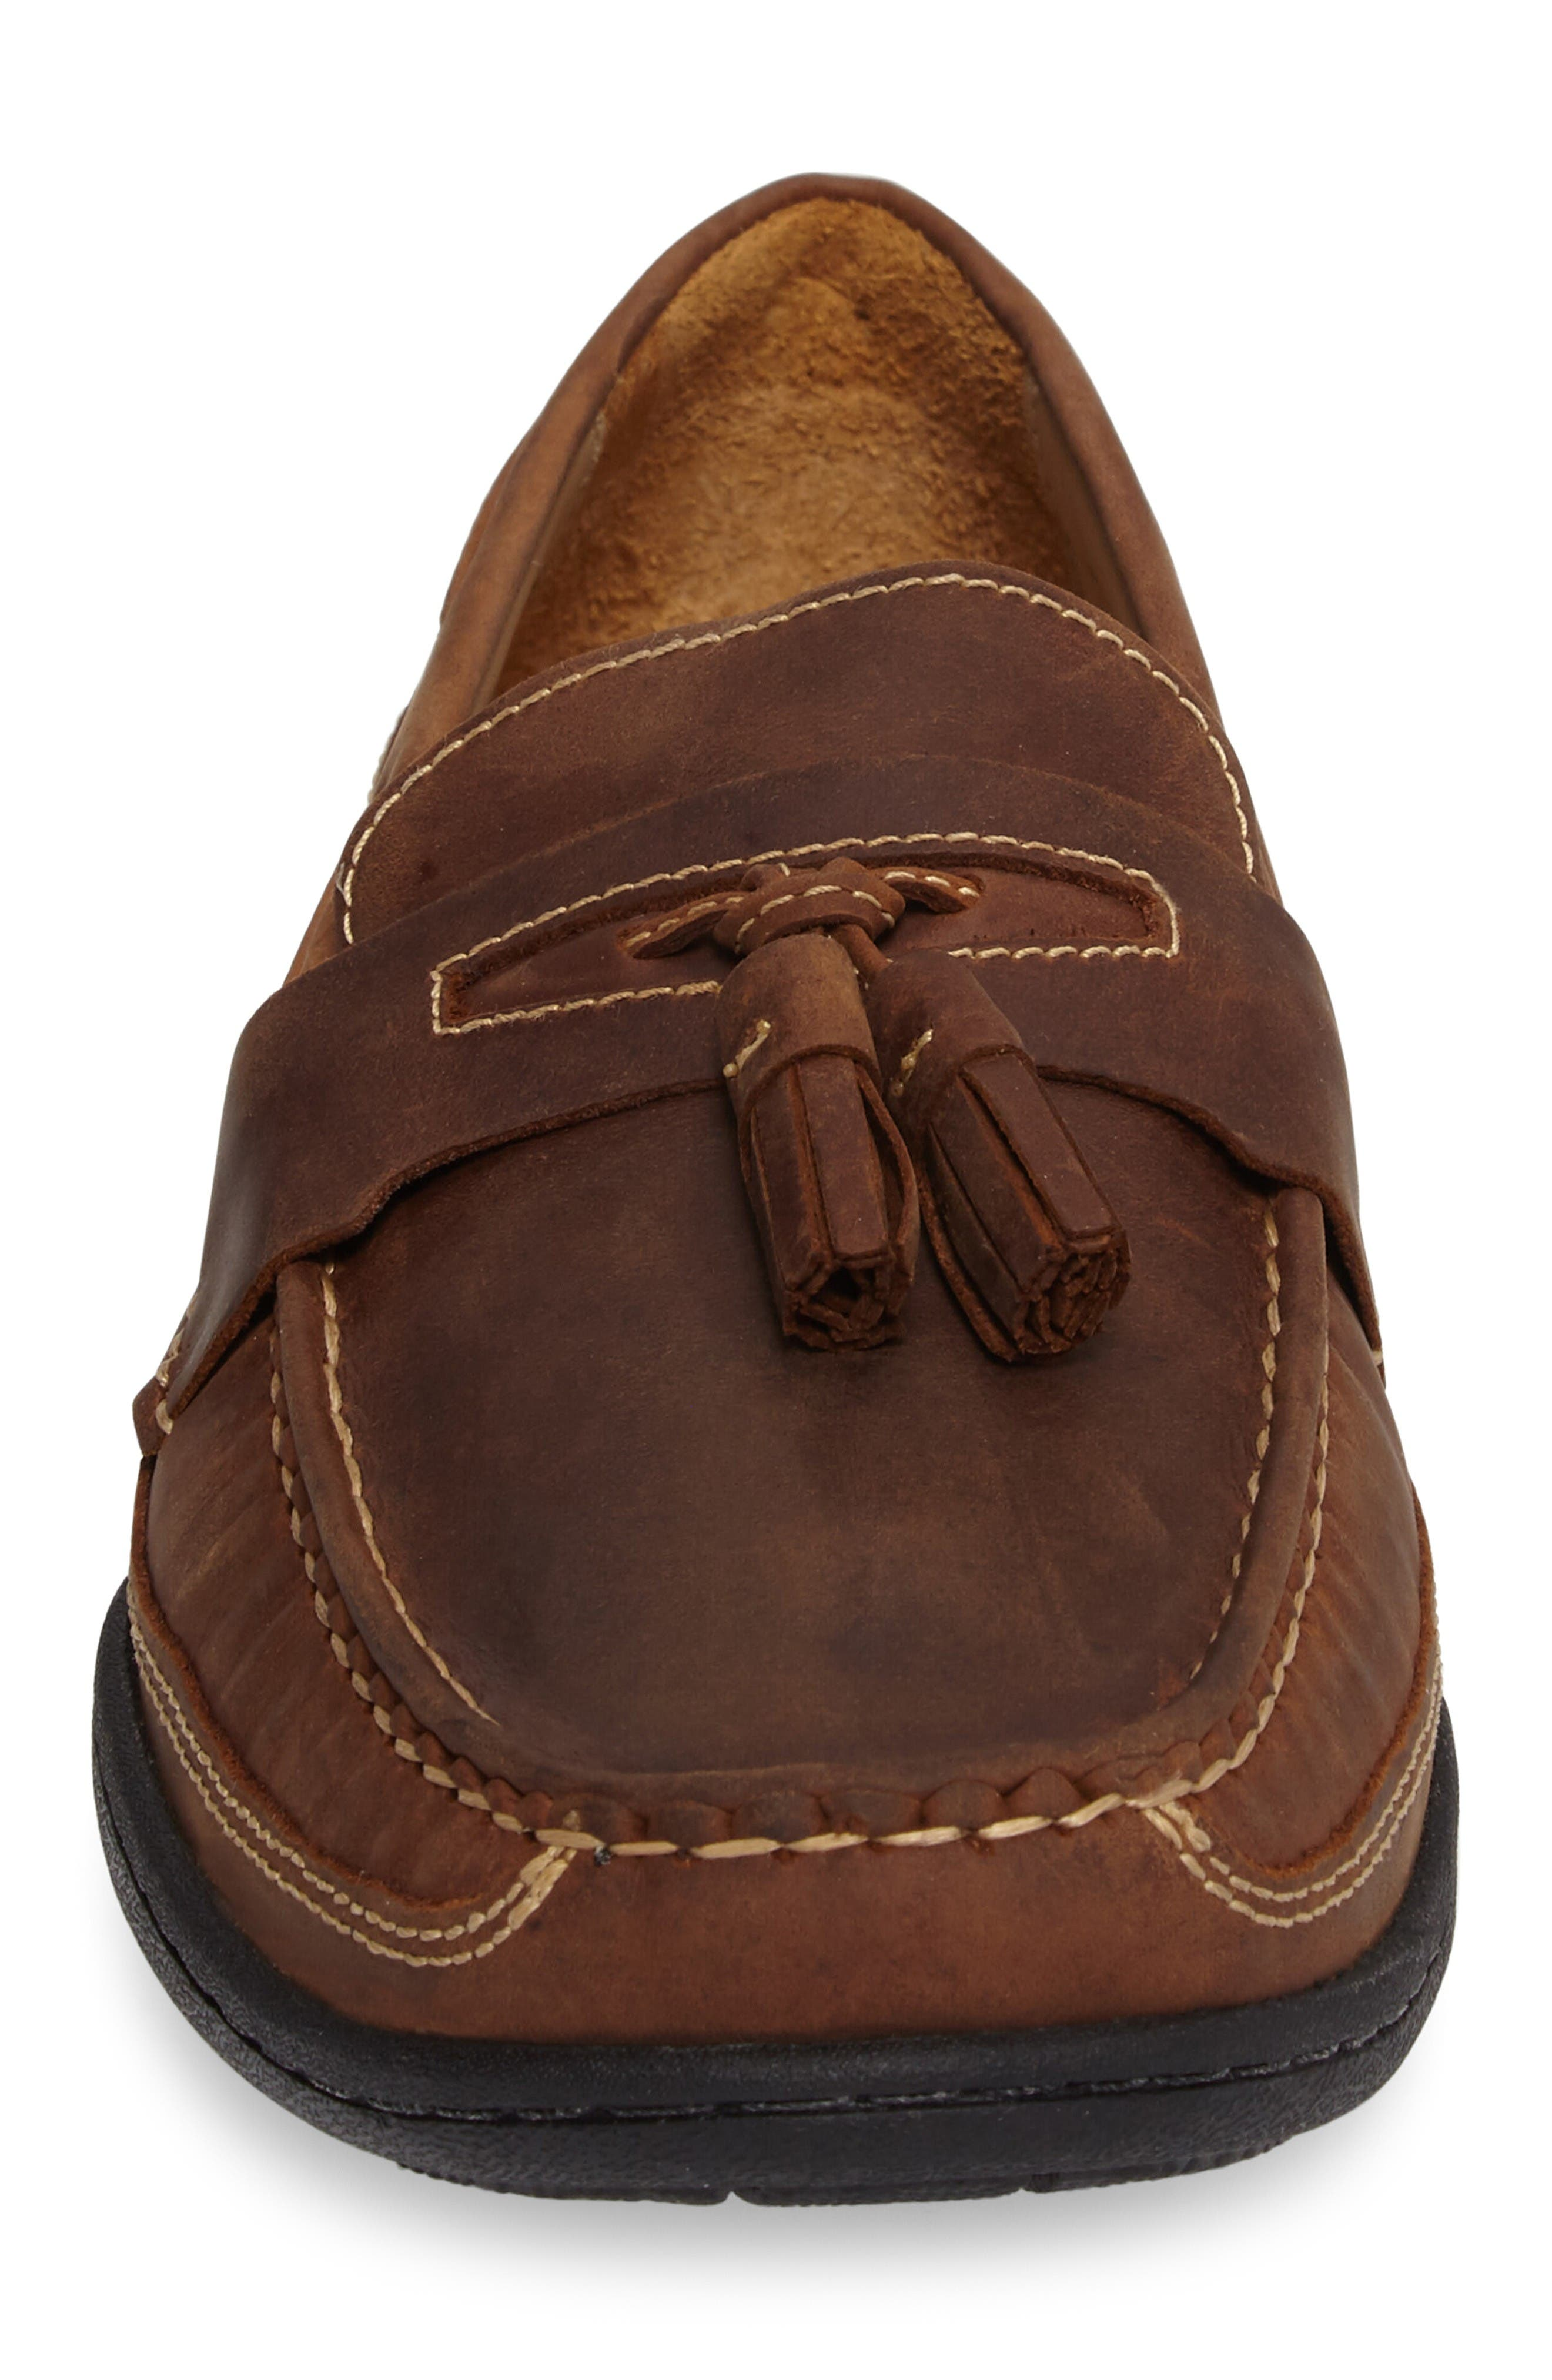 Fowler Tasseled Loafer,                             Alternate thumbnail 4, color,                             Tan Leather